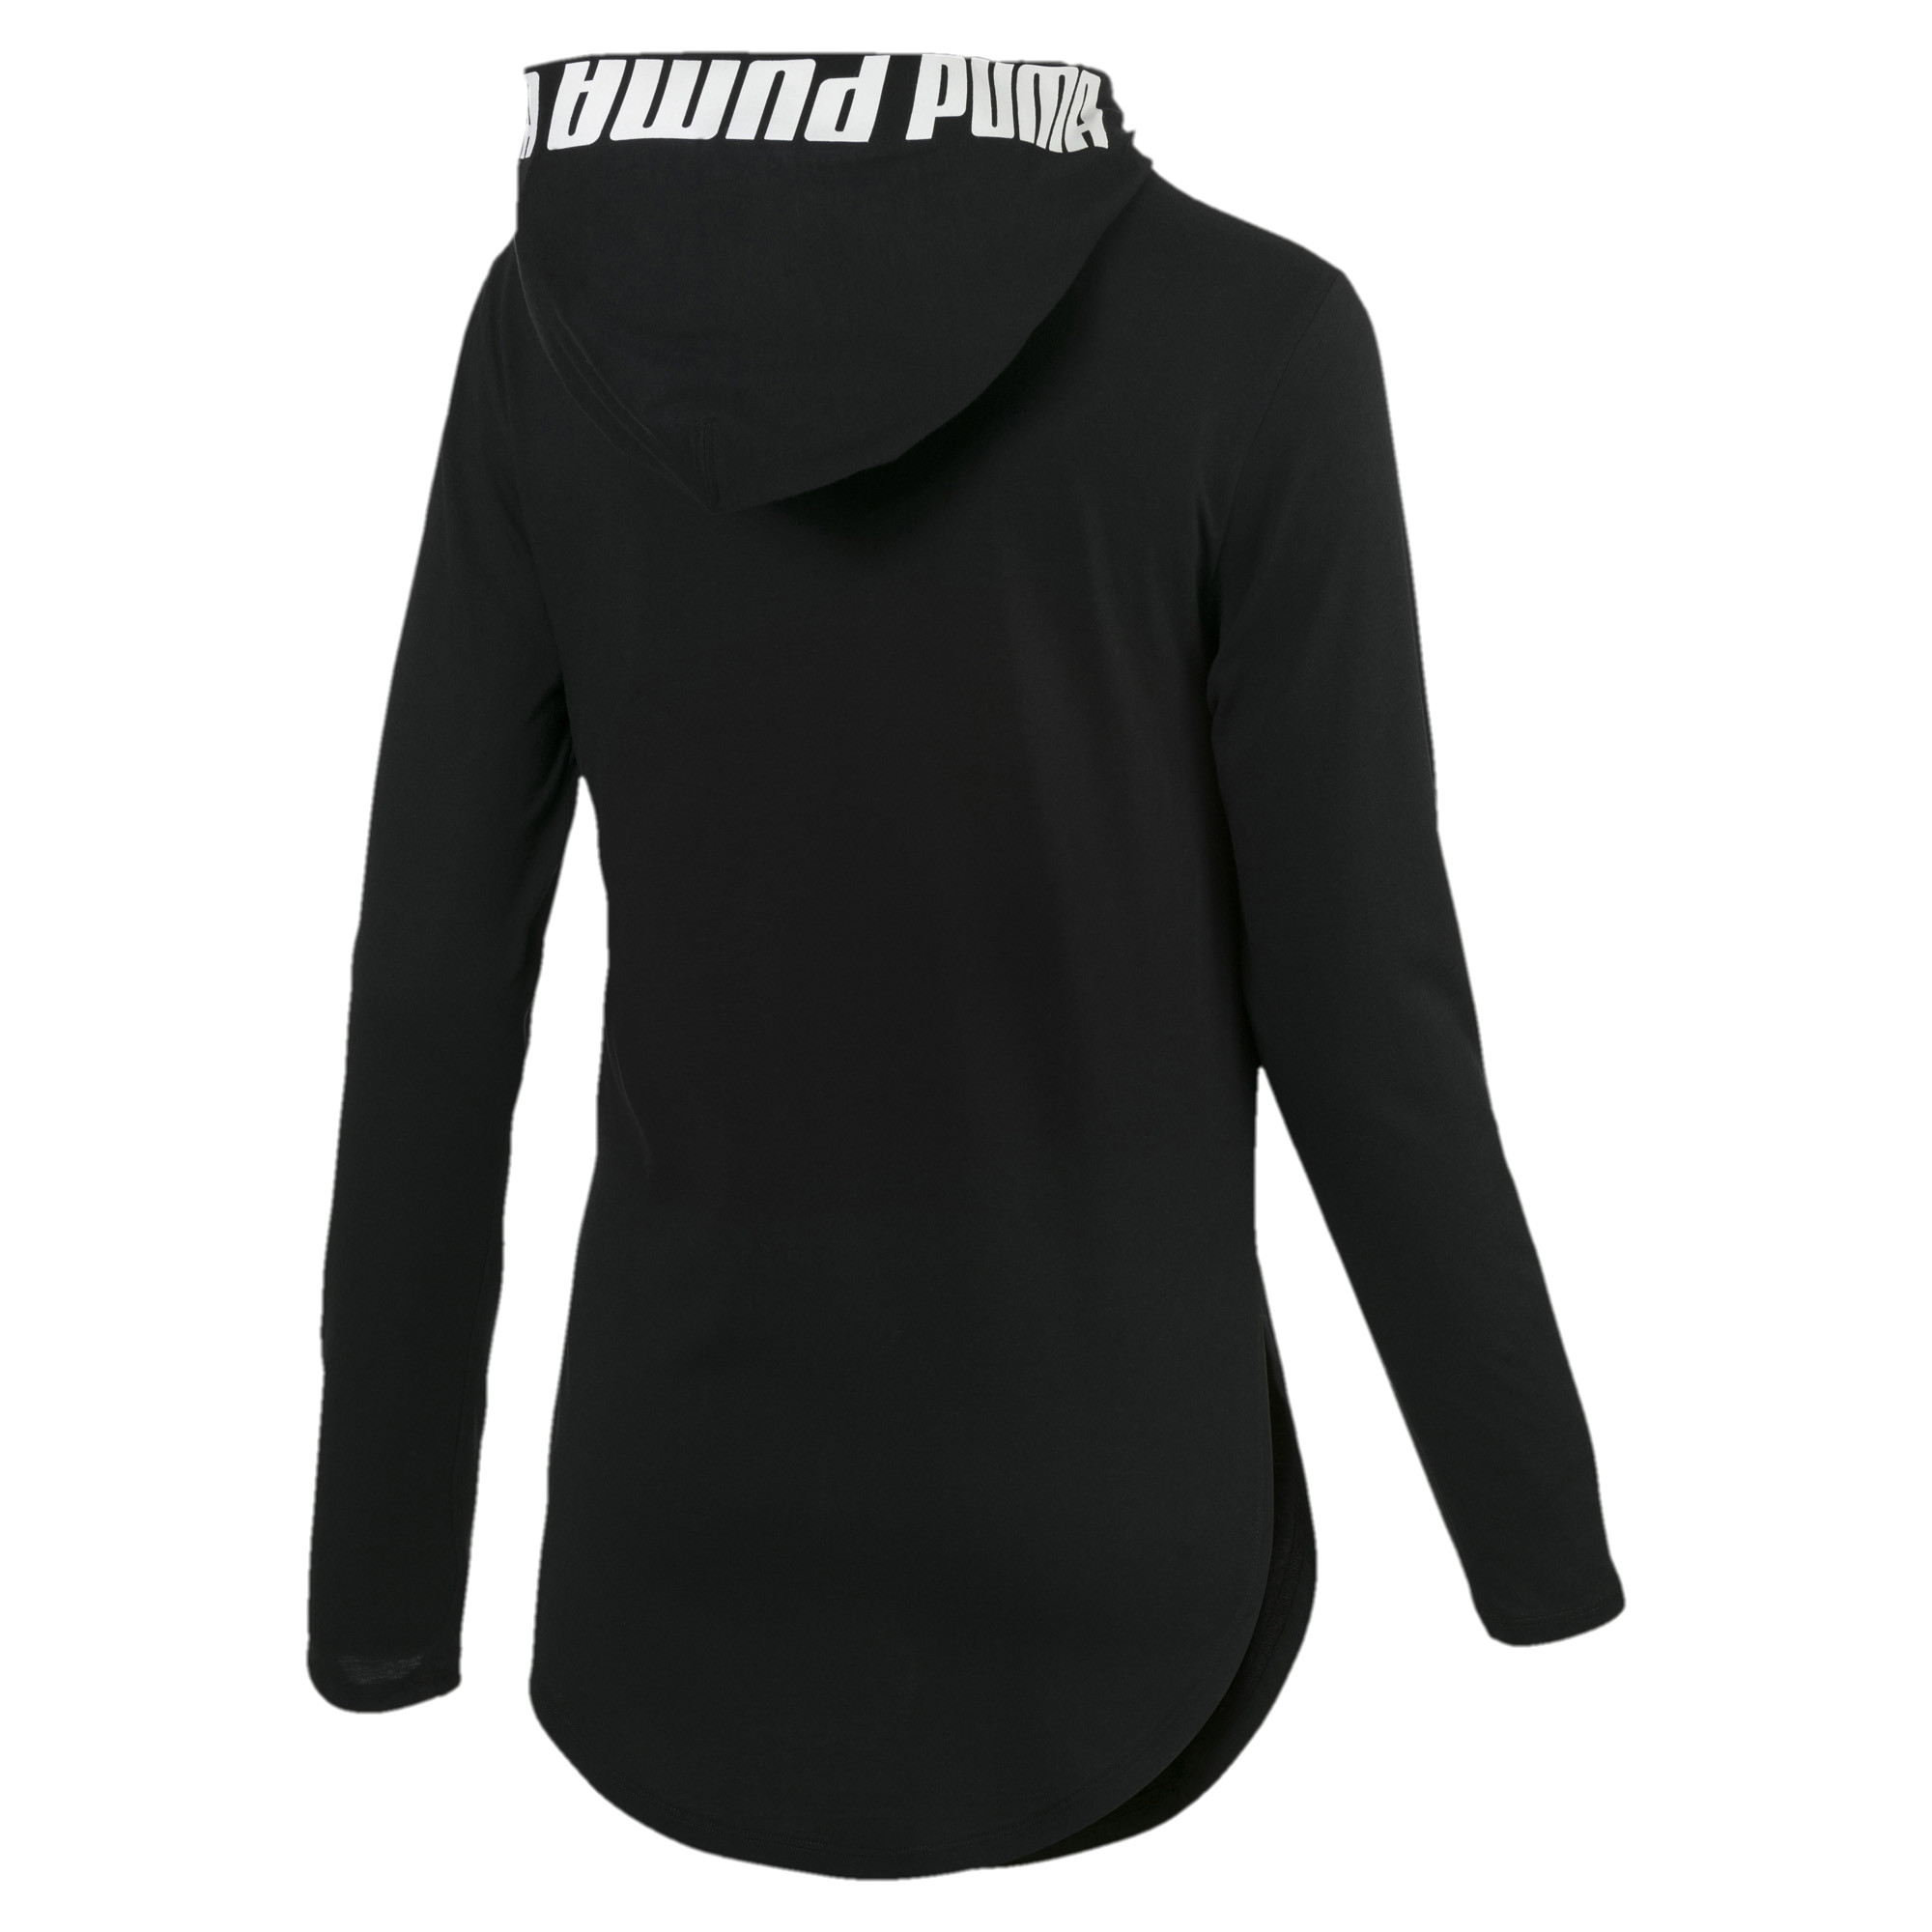 PUMA-Modern-Sports-Light-Cover-up-Women-Tee-Basics thumbnail 6